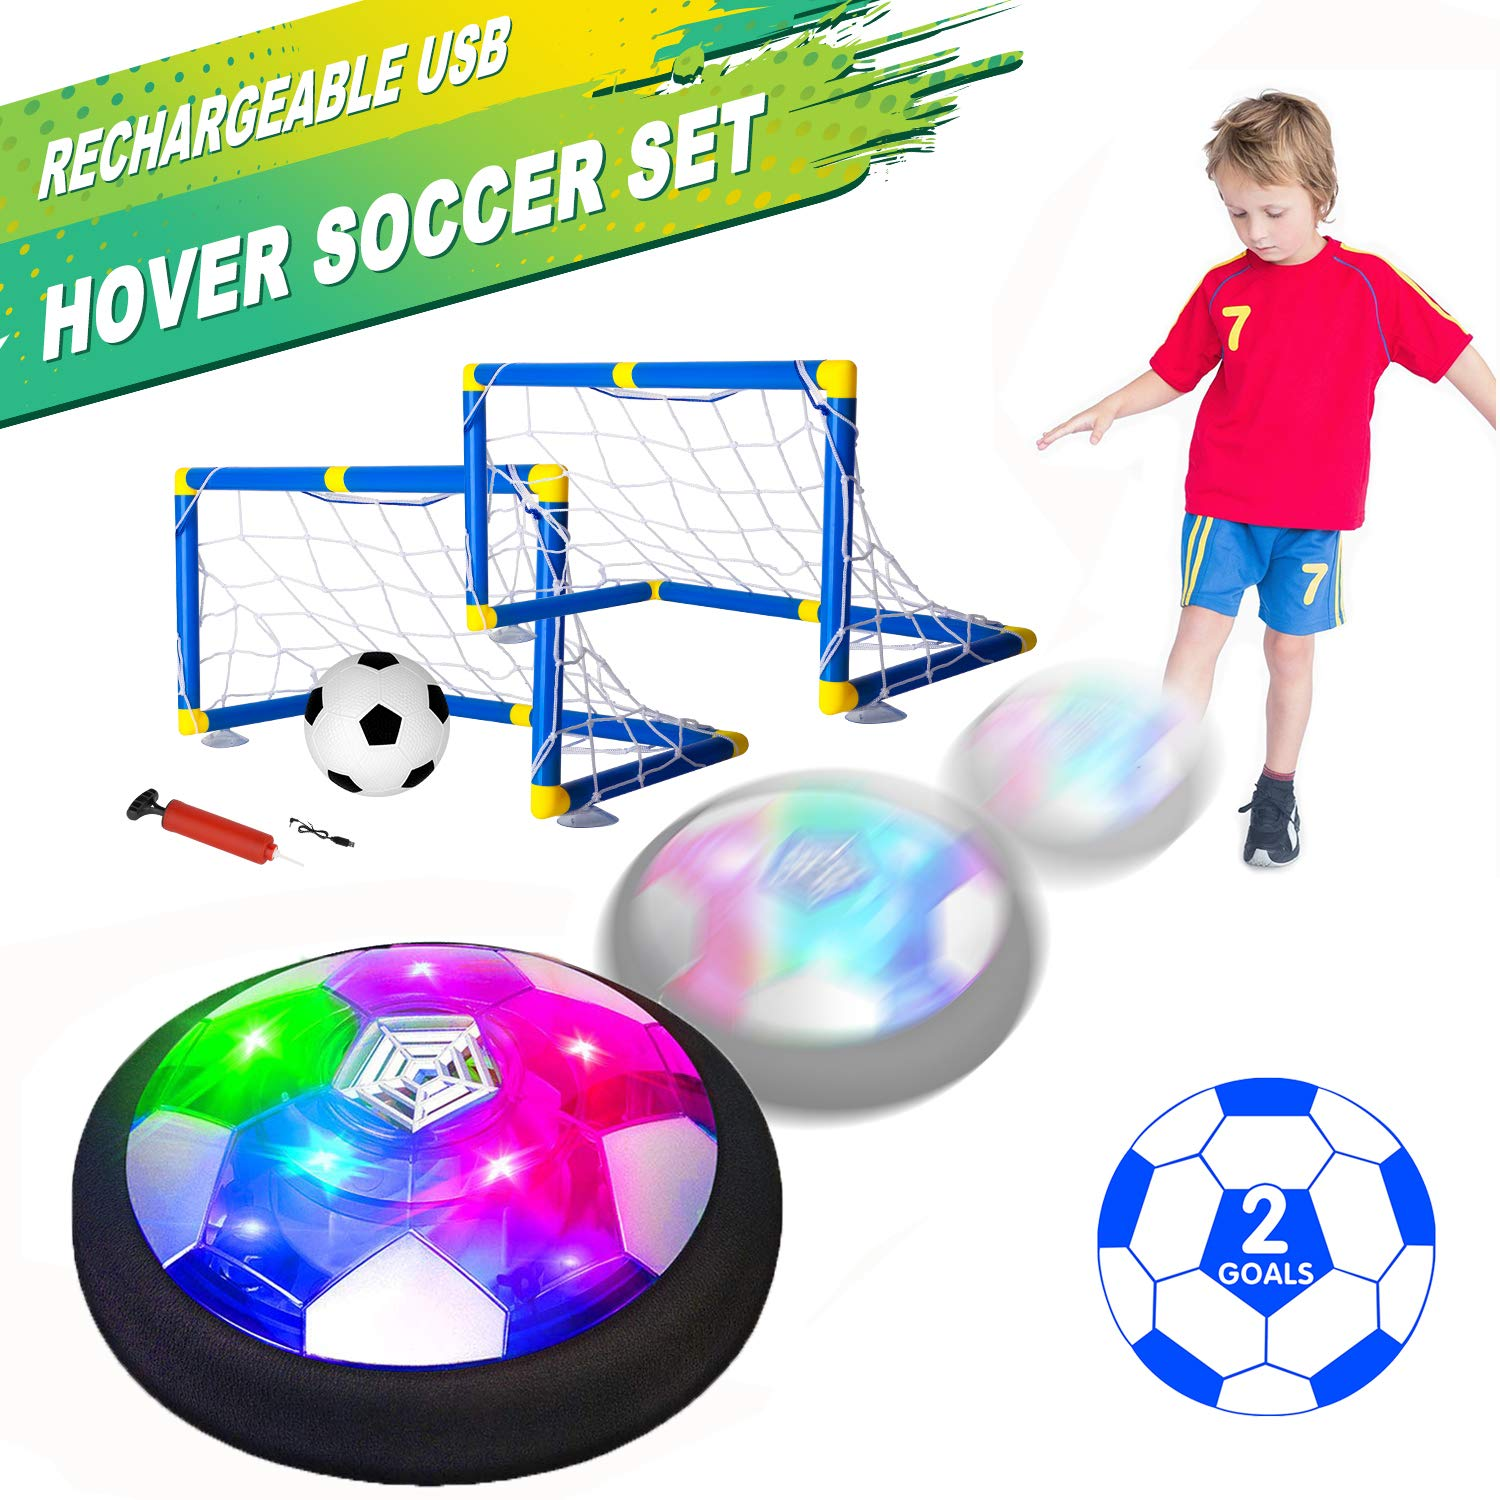 Kids Toys Hover Soccer Ball Set with 2 Goals, Air Soccer with LED Light, USB Rechargeable Floating Soccer Ball with Foam Bumper for Indoor Outdoor Sports Ball Game, Football Toy for Boy Girl Best Gift by AOKESI